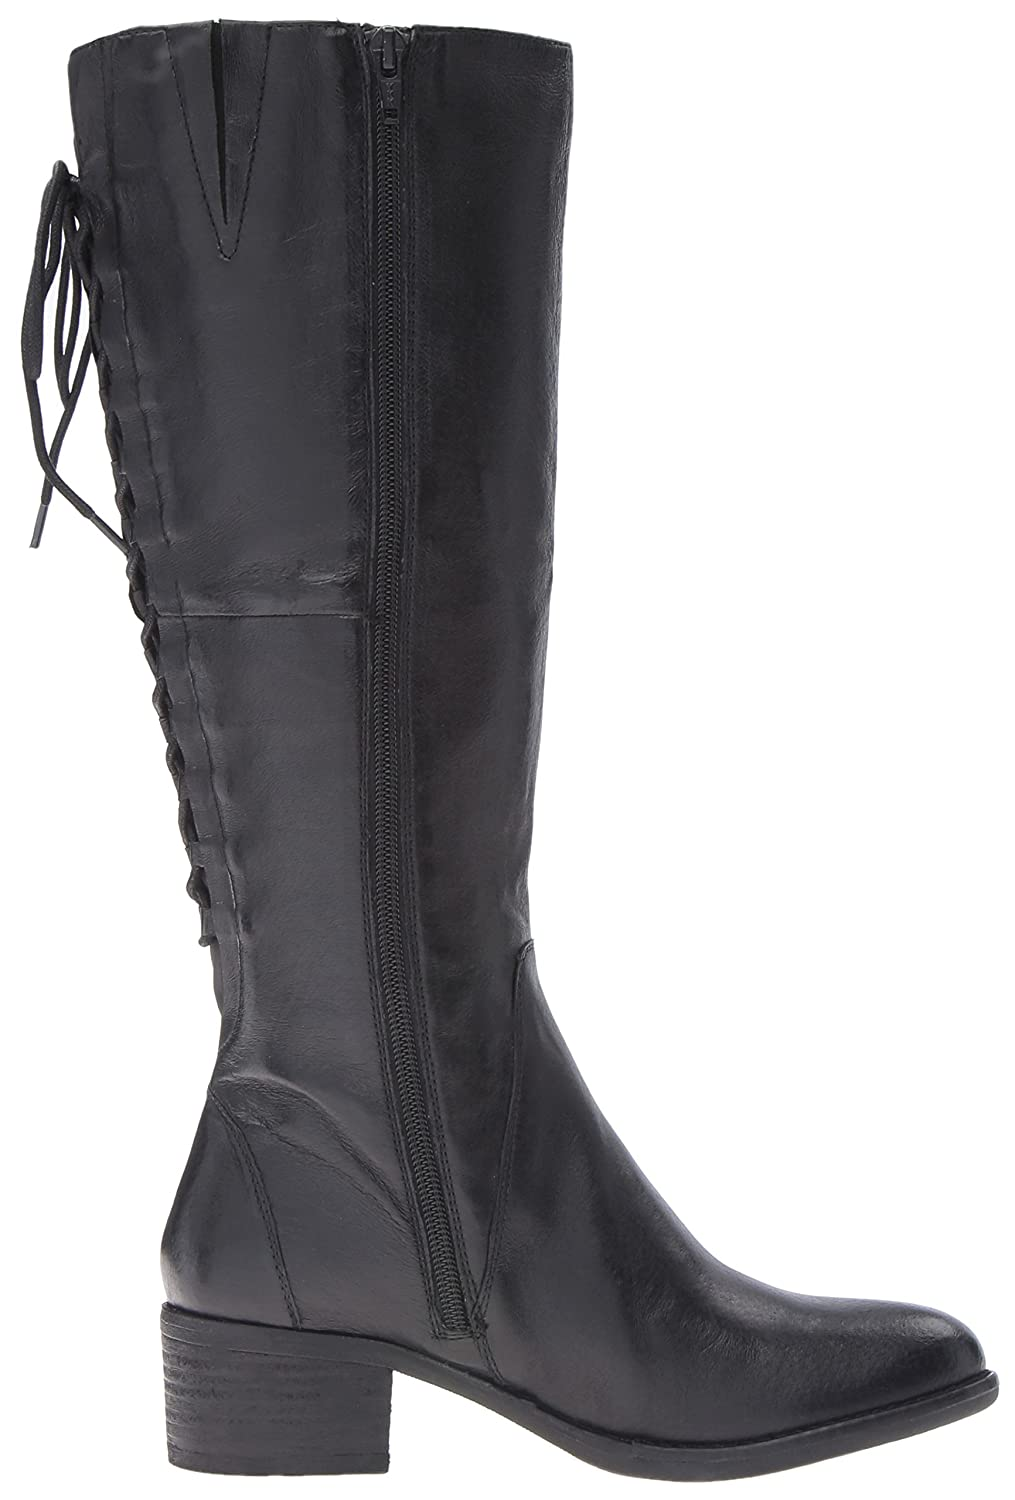 Steve Madden Women's Laceupw US|Black Western Boot B01GF4M1RO 9.5 B(M) US|Black Laceupw Leather 0cdd2a